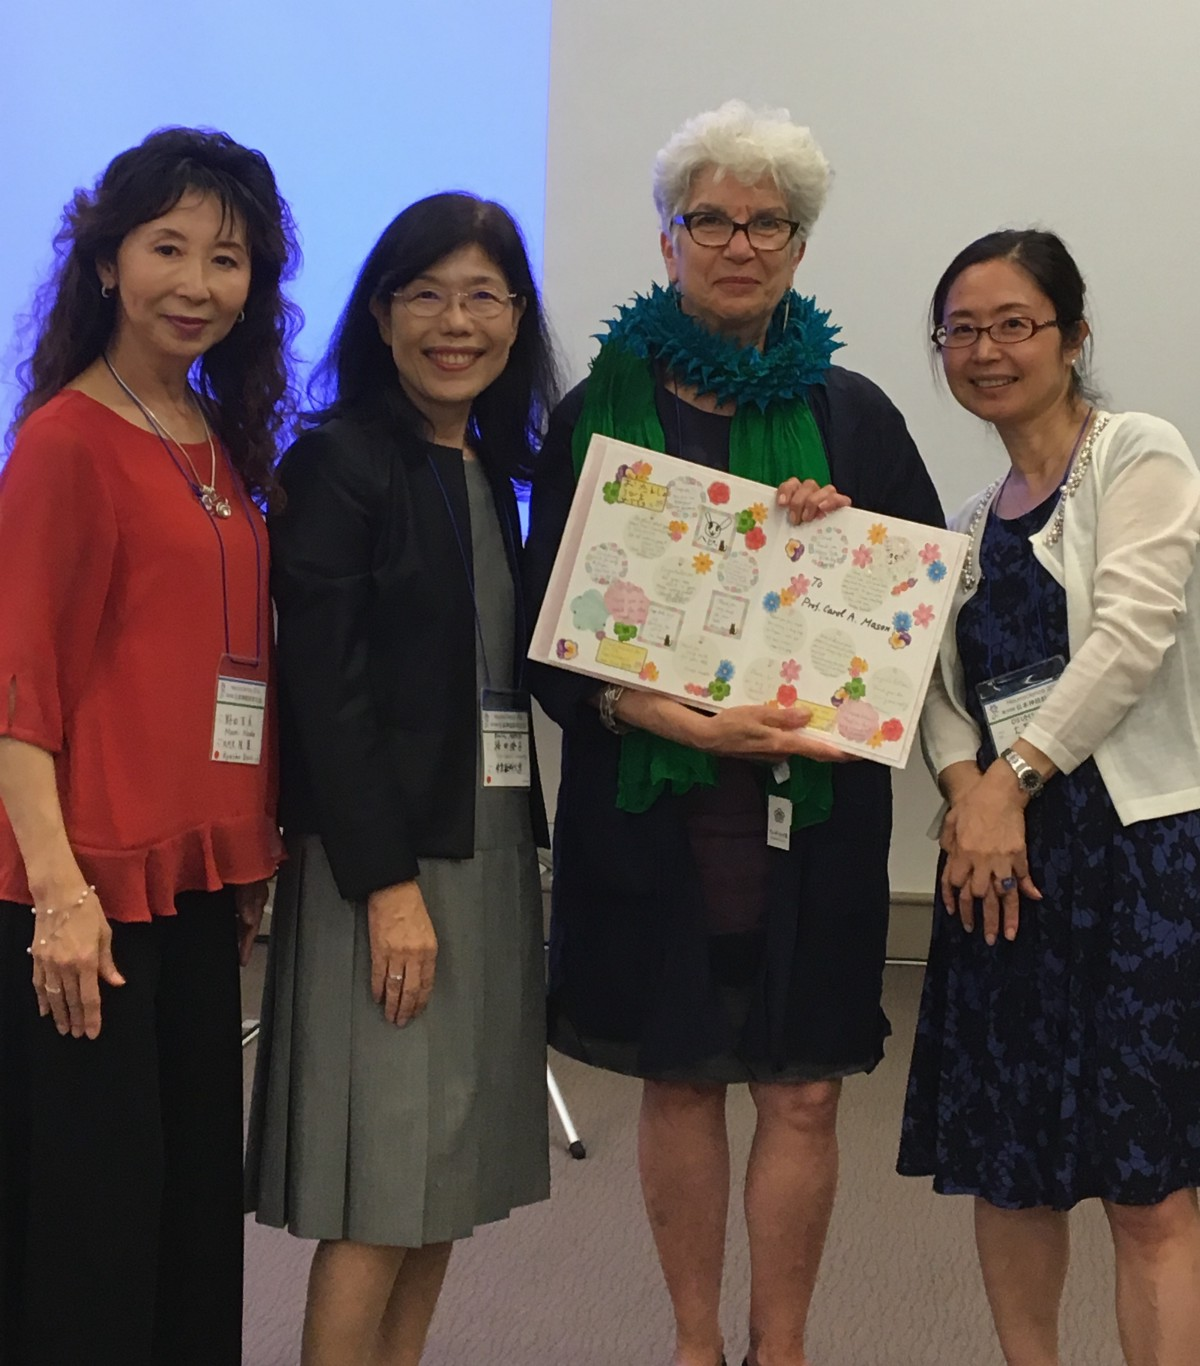 The conveners of the gender equality seminar at the Japan Neuroscience Society meeting on July 20, 2016: Dr. Mami Noda (Kyushu University), Prof. Sumiko Mochida (Tokyo Medical University), Prof. Noriko Osumi (Tohoku University) with speaker Prof. Carol Mason (Columbia University)